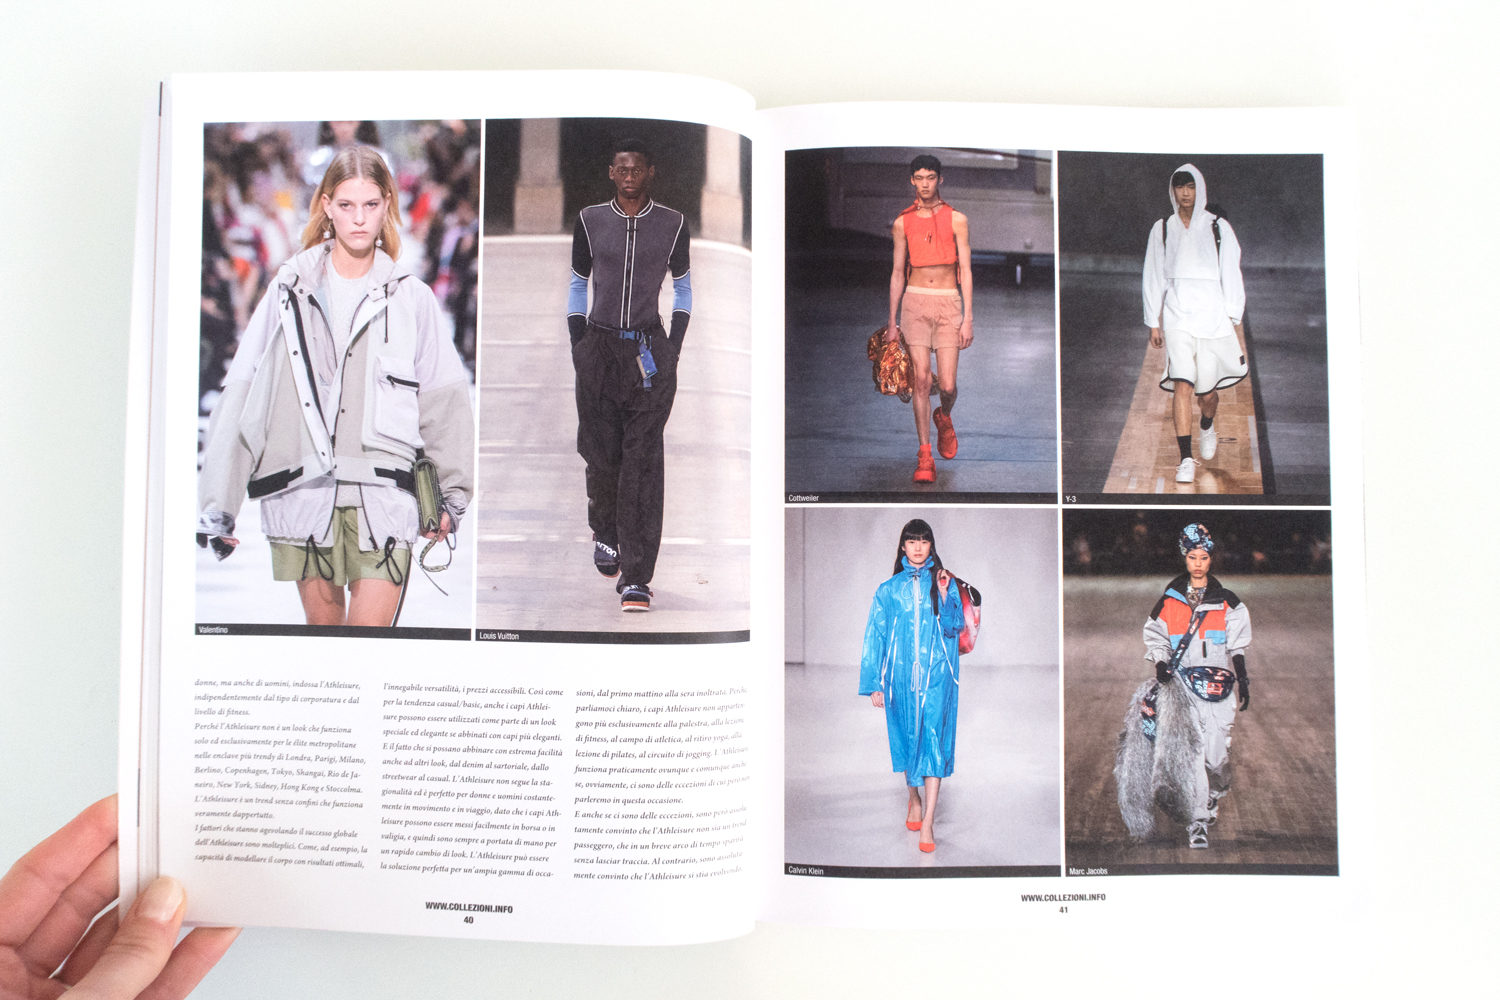 SPORT AND STREET | COLLEZIONI Issue 84, The Beauty of Athleisure by Alberto Caselli Manzini